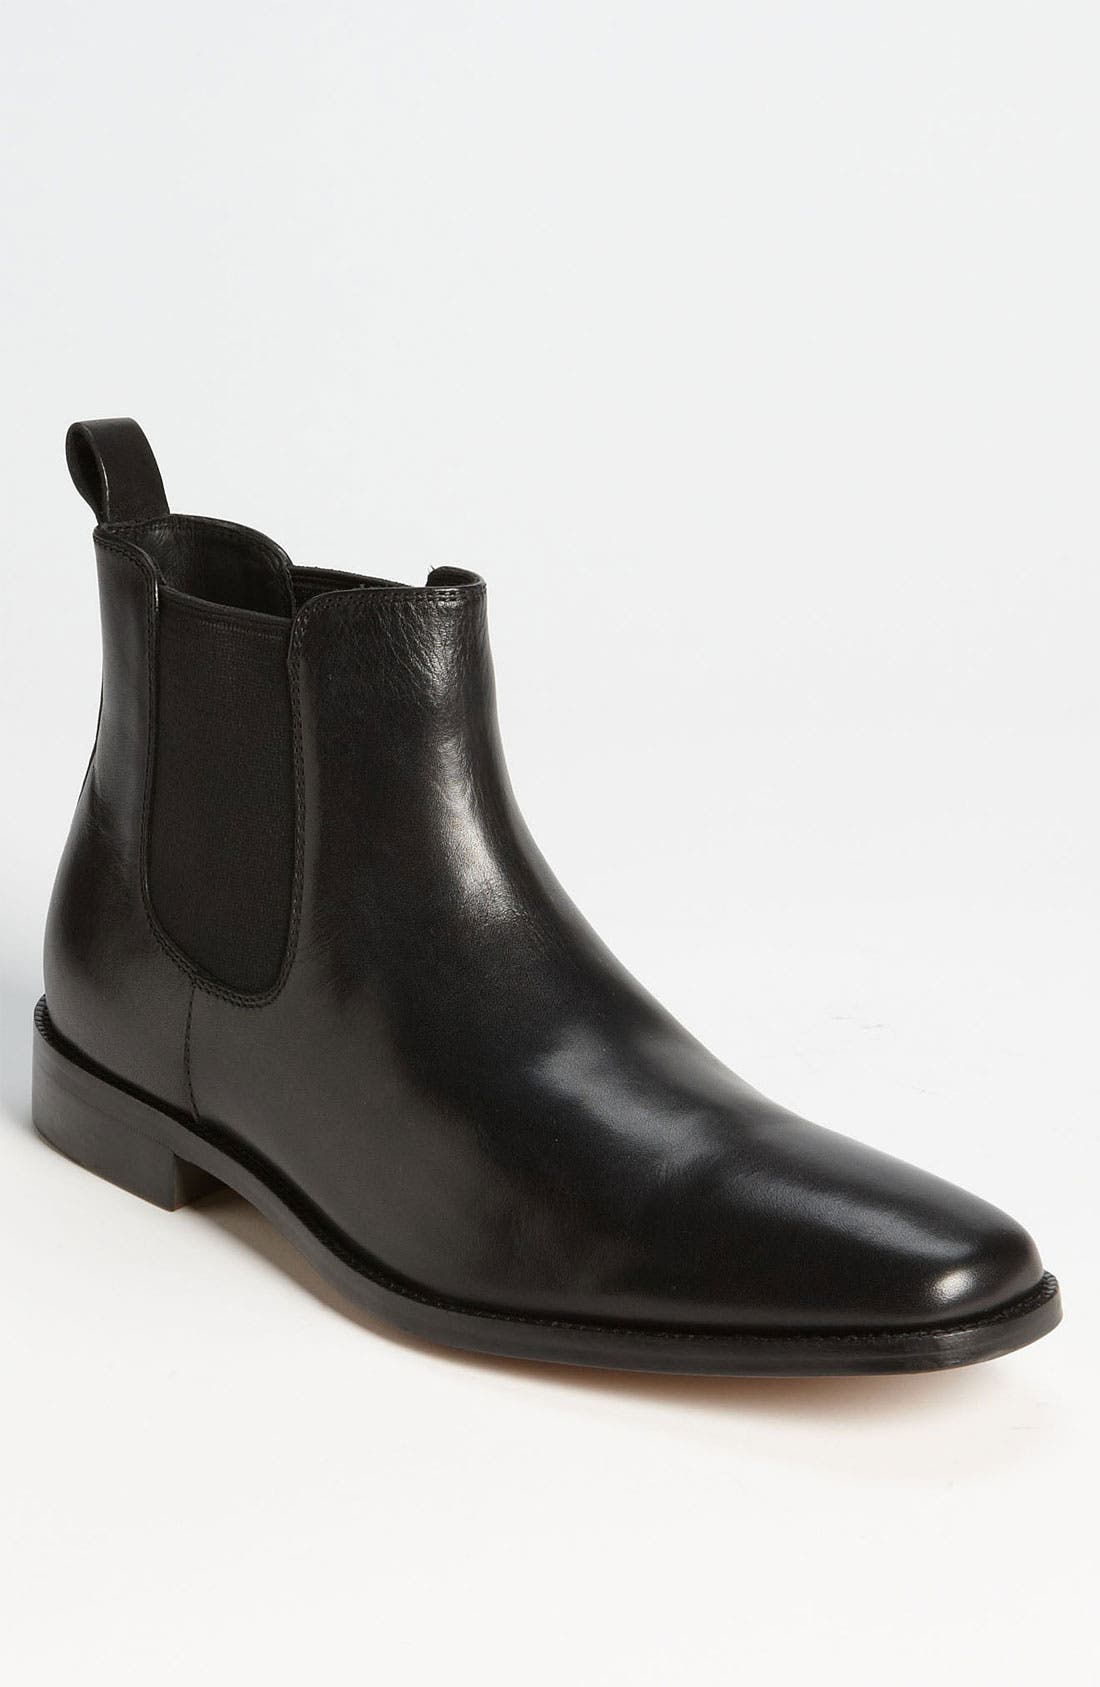 Main Image - Gordon Rush 'Hastings' Chelsea Boot